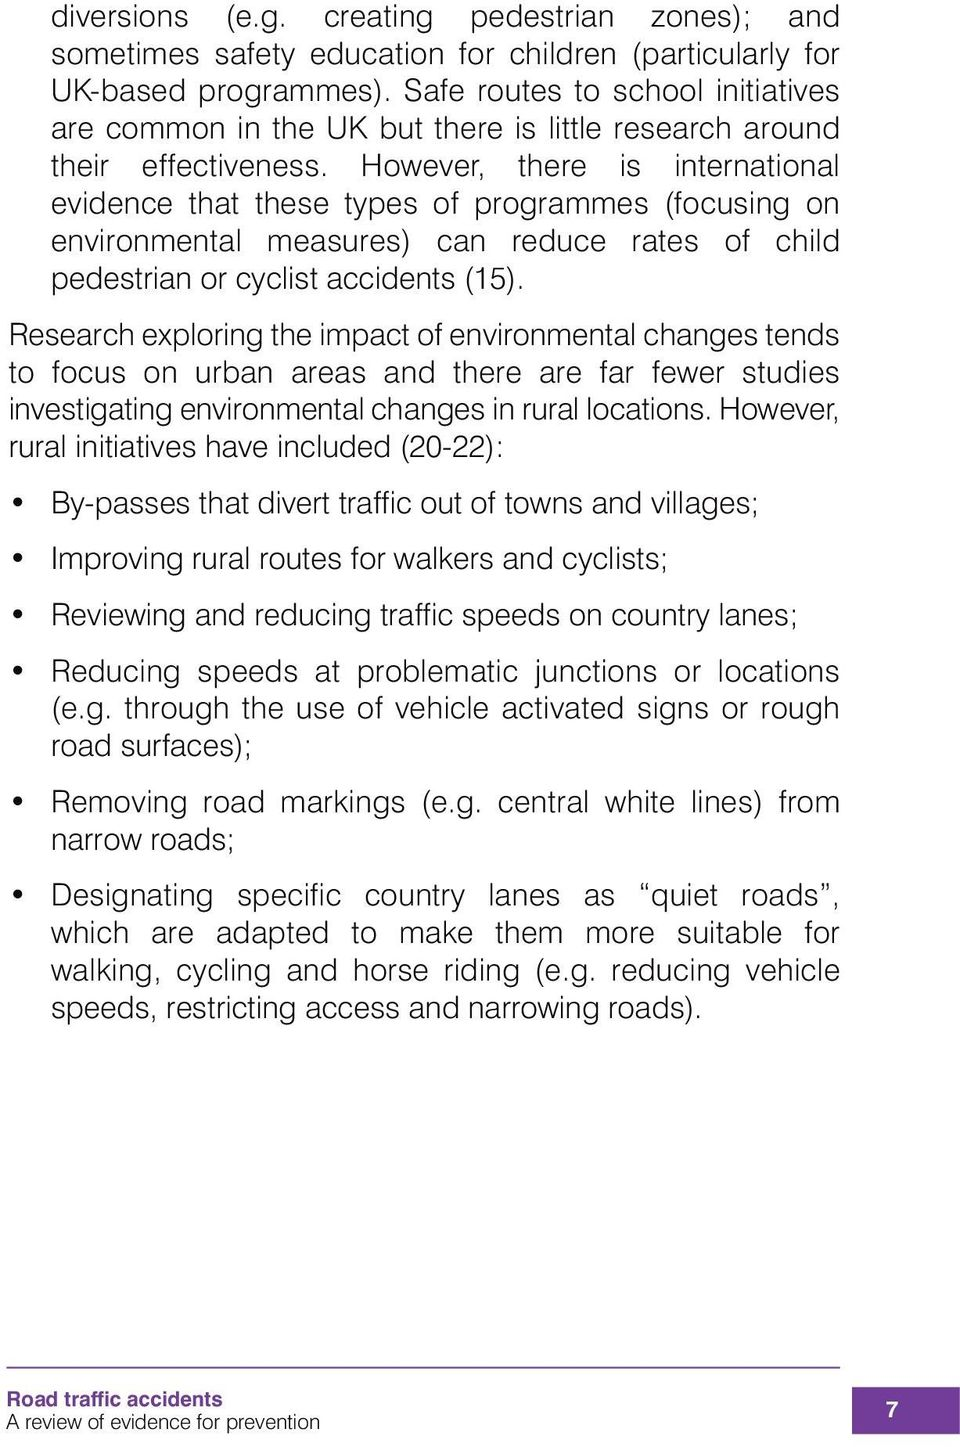 However, there is international evidence that these types of programmes (focusing on environmental measures) can reduce rates of child pedestrian or cyclist accidents (15).